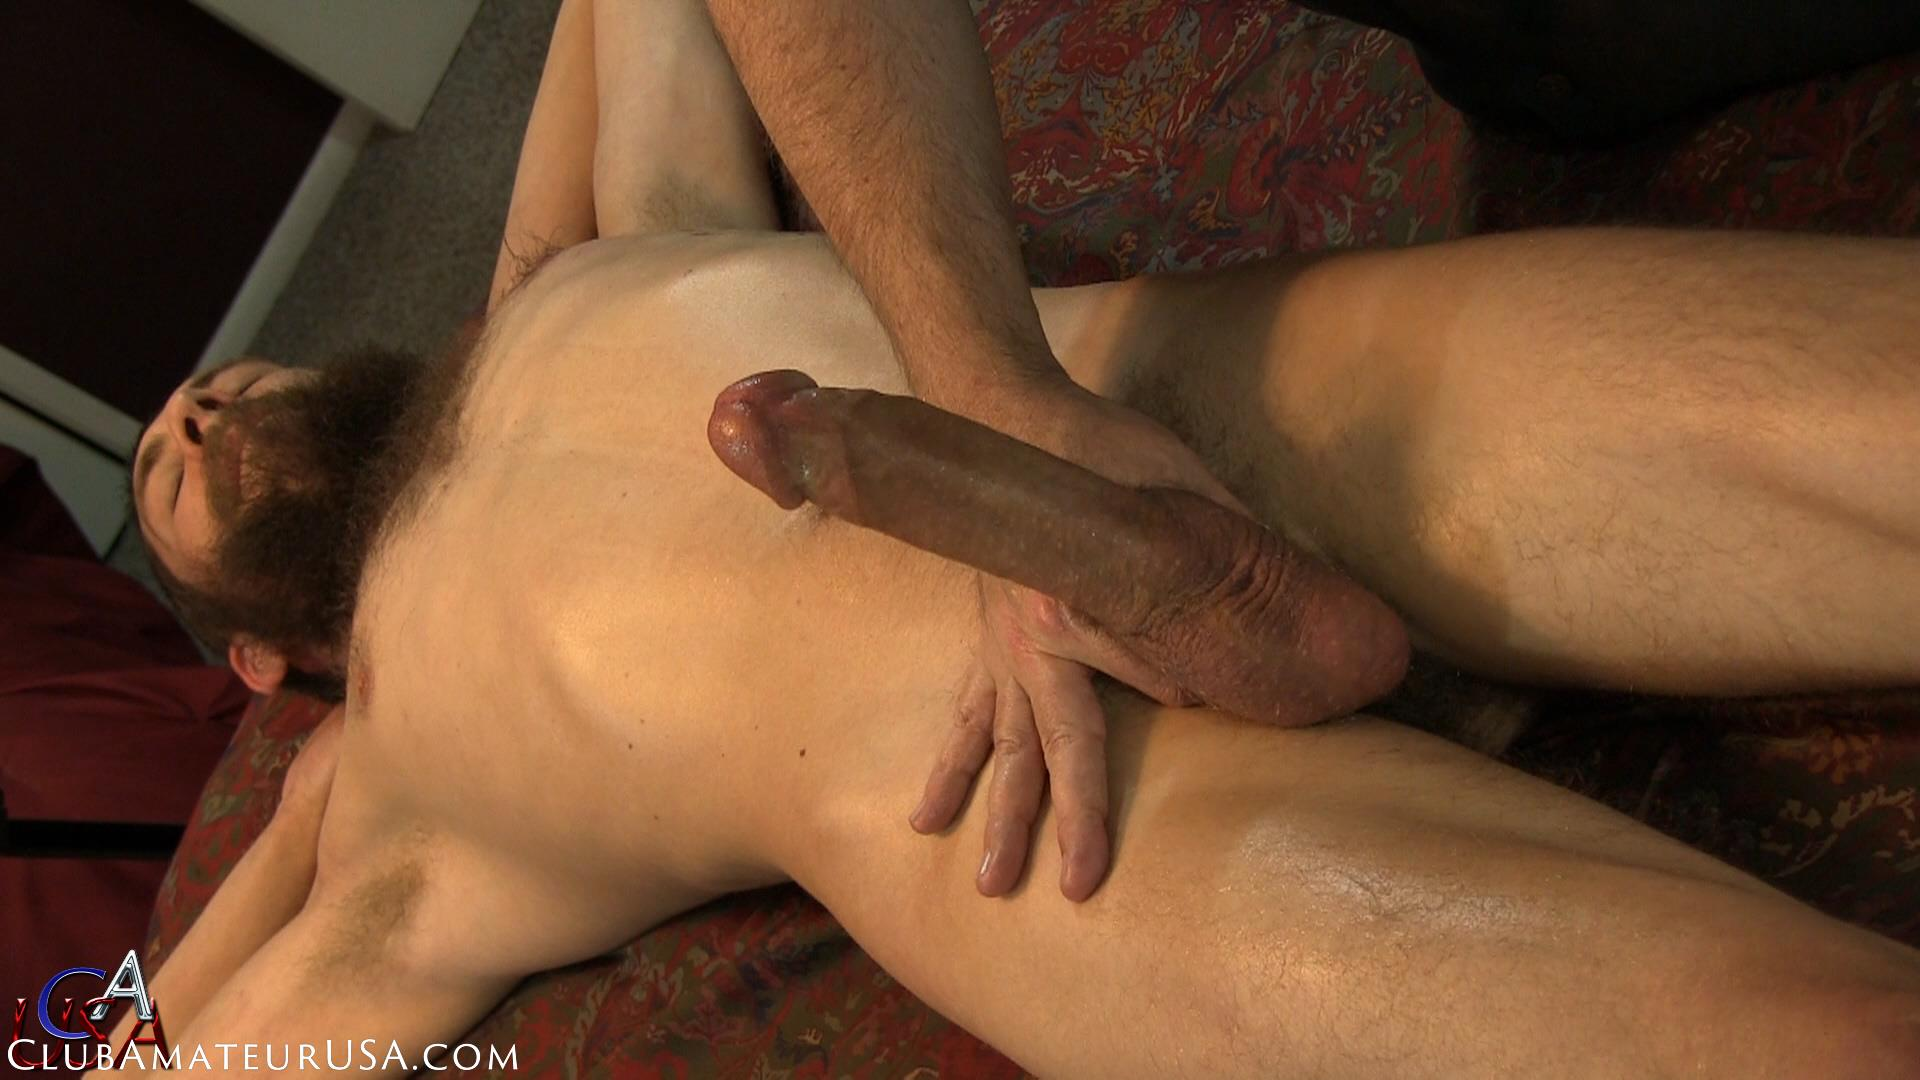 Club Amateur USA Wyatt Straight Redneck Getting Jerked Off Amateur Gay Porn 23